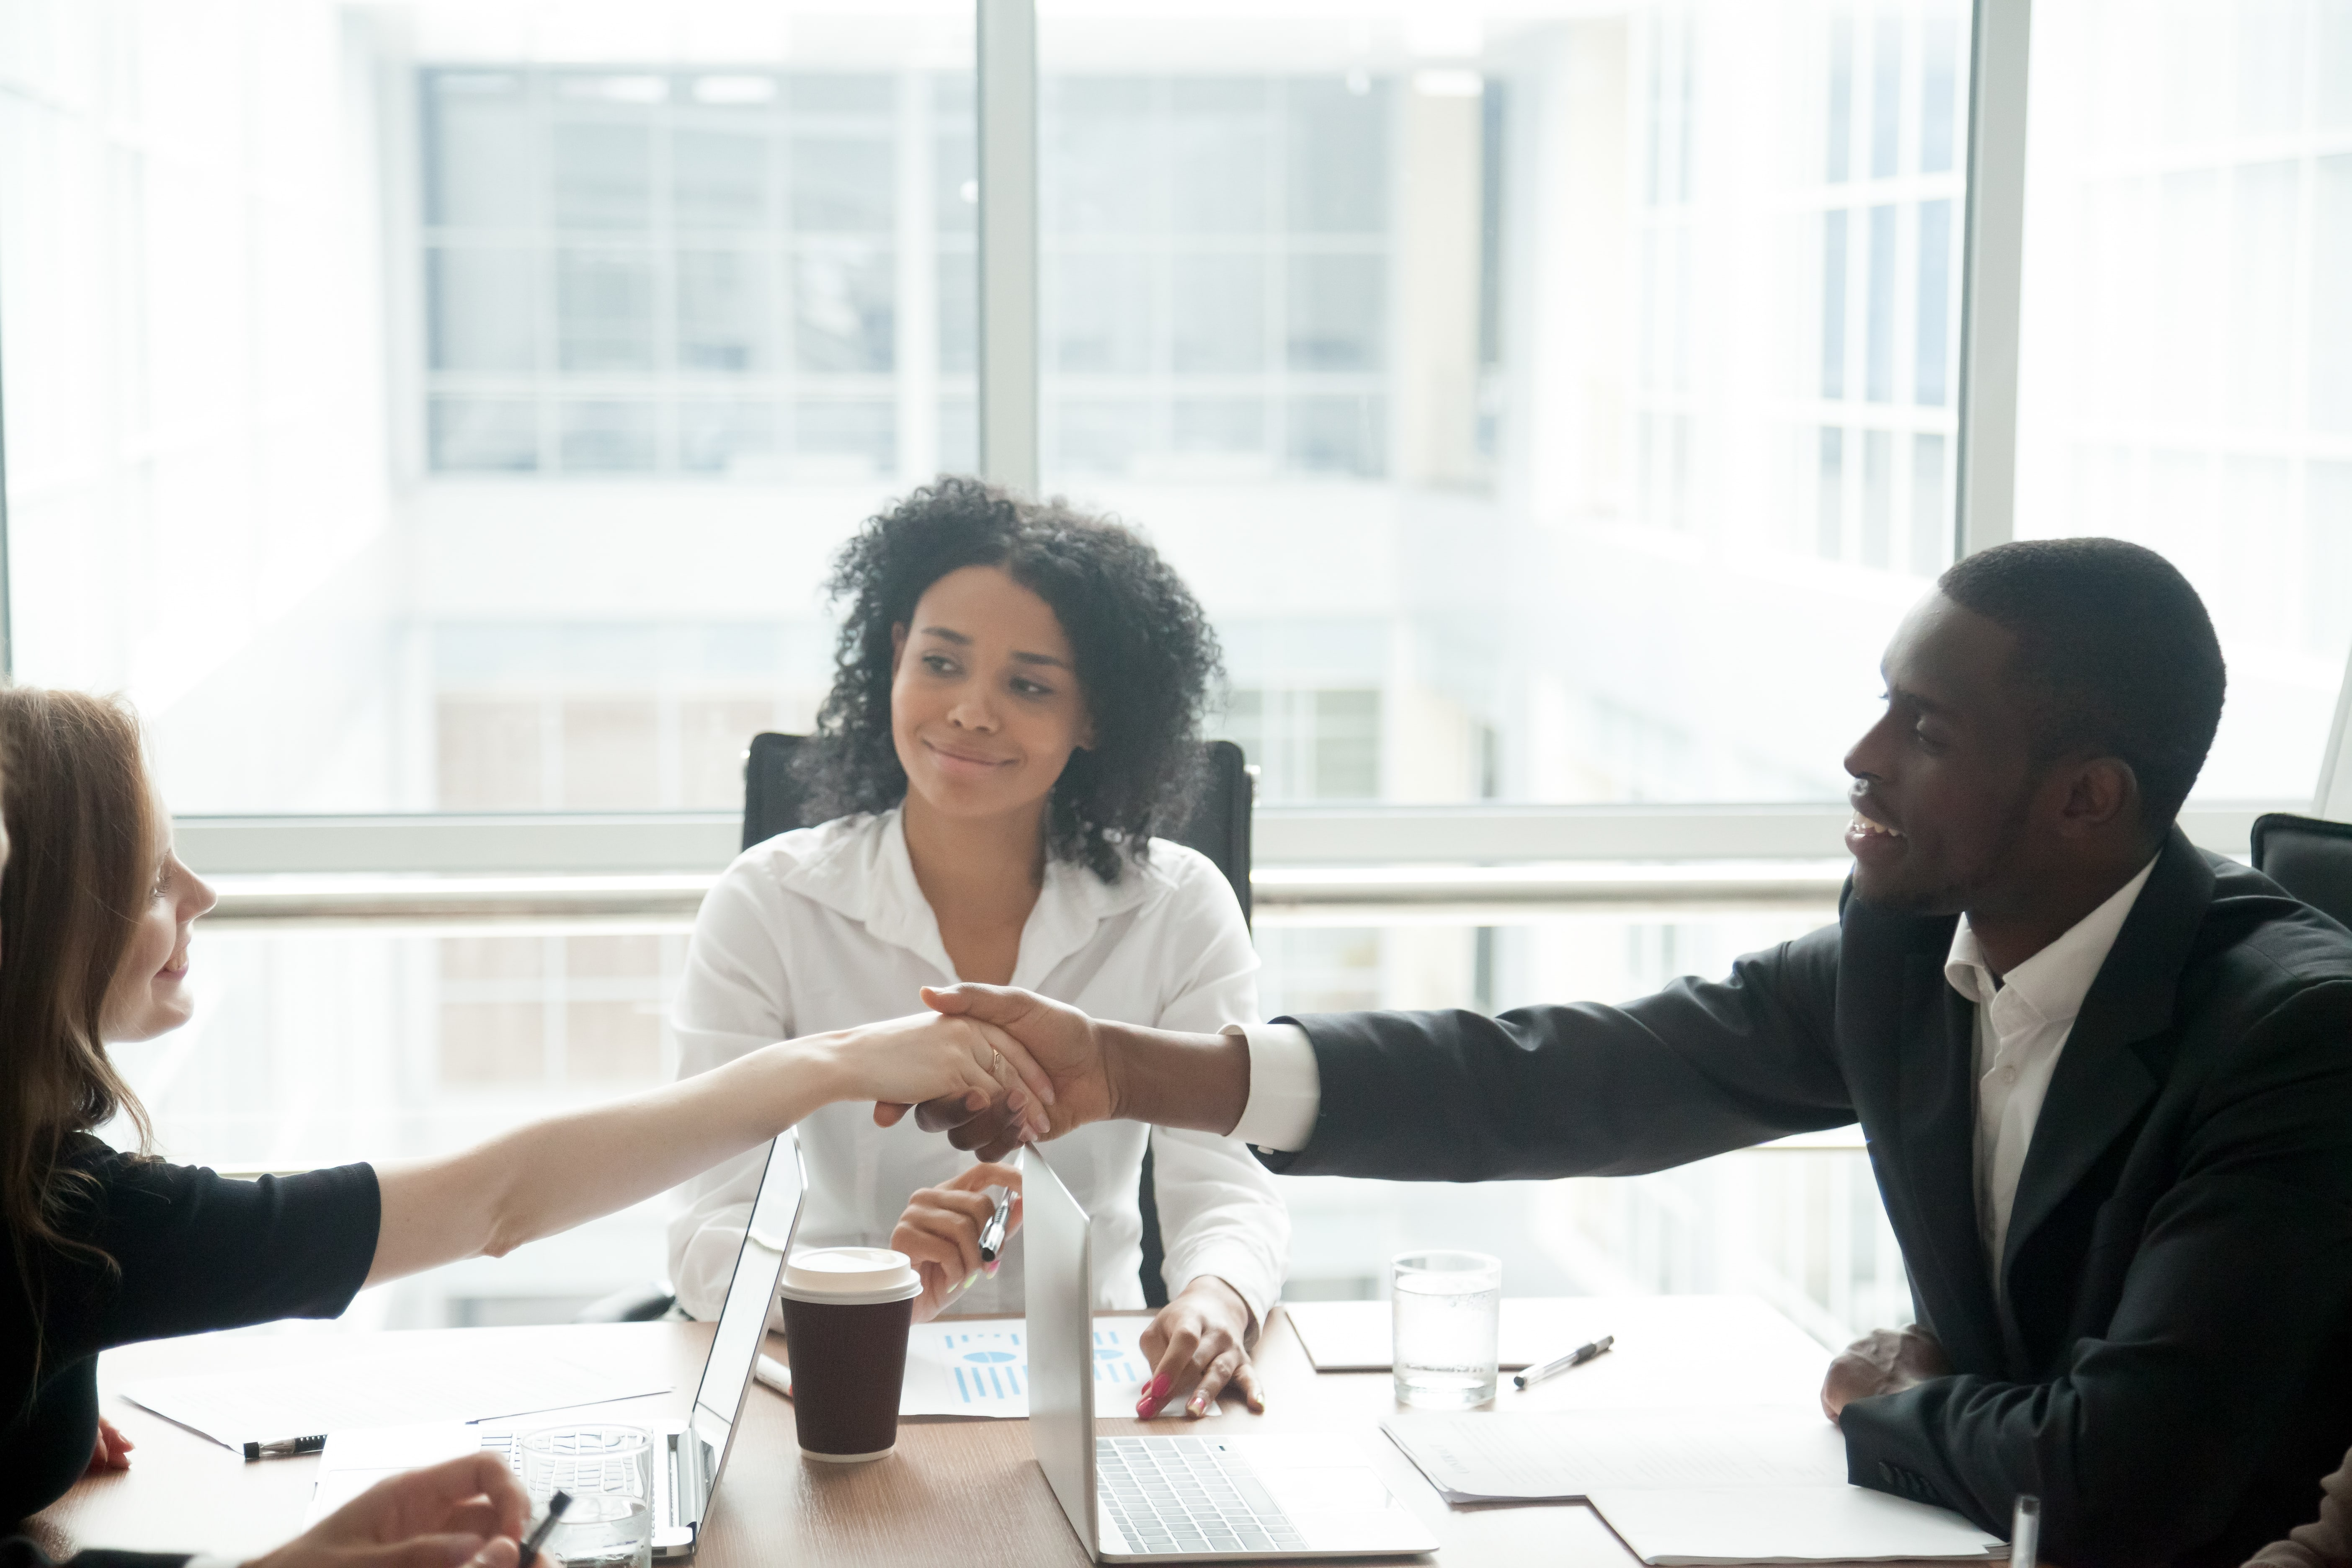 Manager using conflict resolution skills to help employees come to an agreement